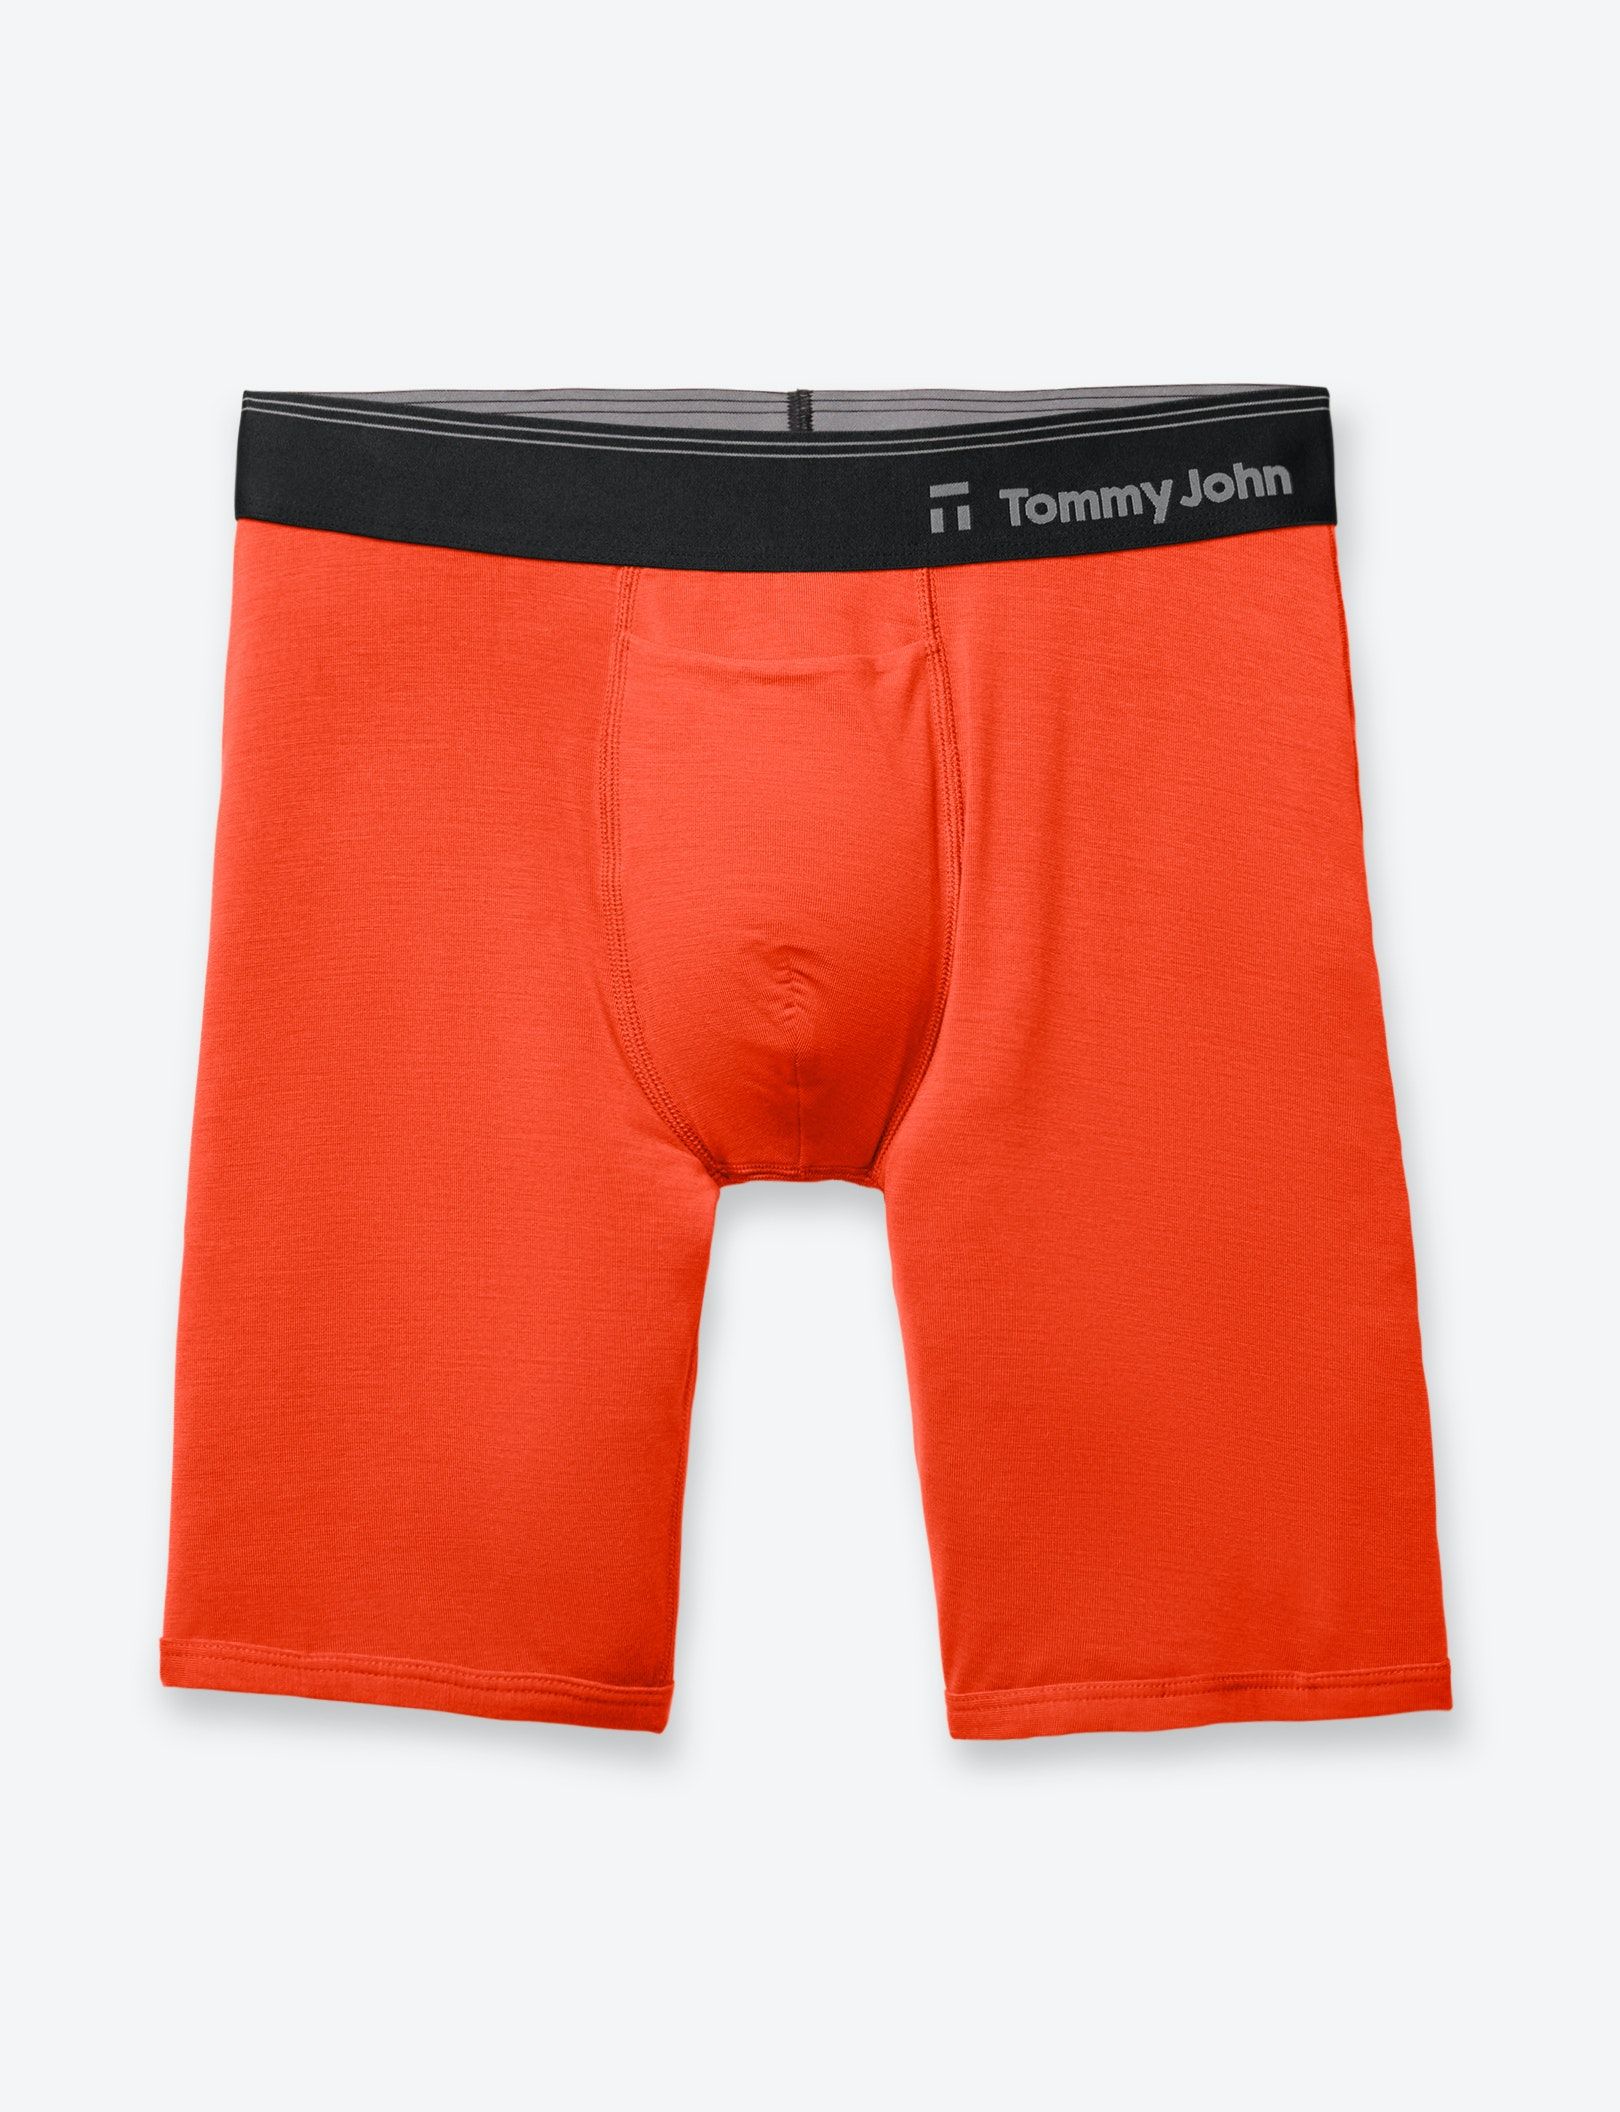 Image of Second Skin Chrome Boxer Brief